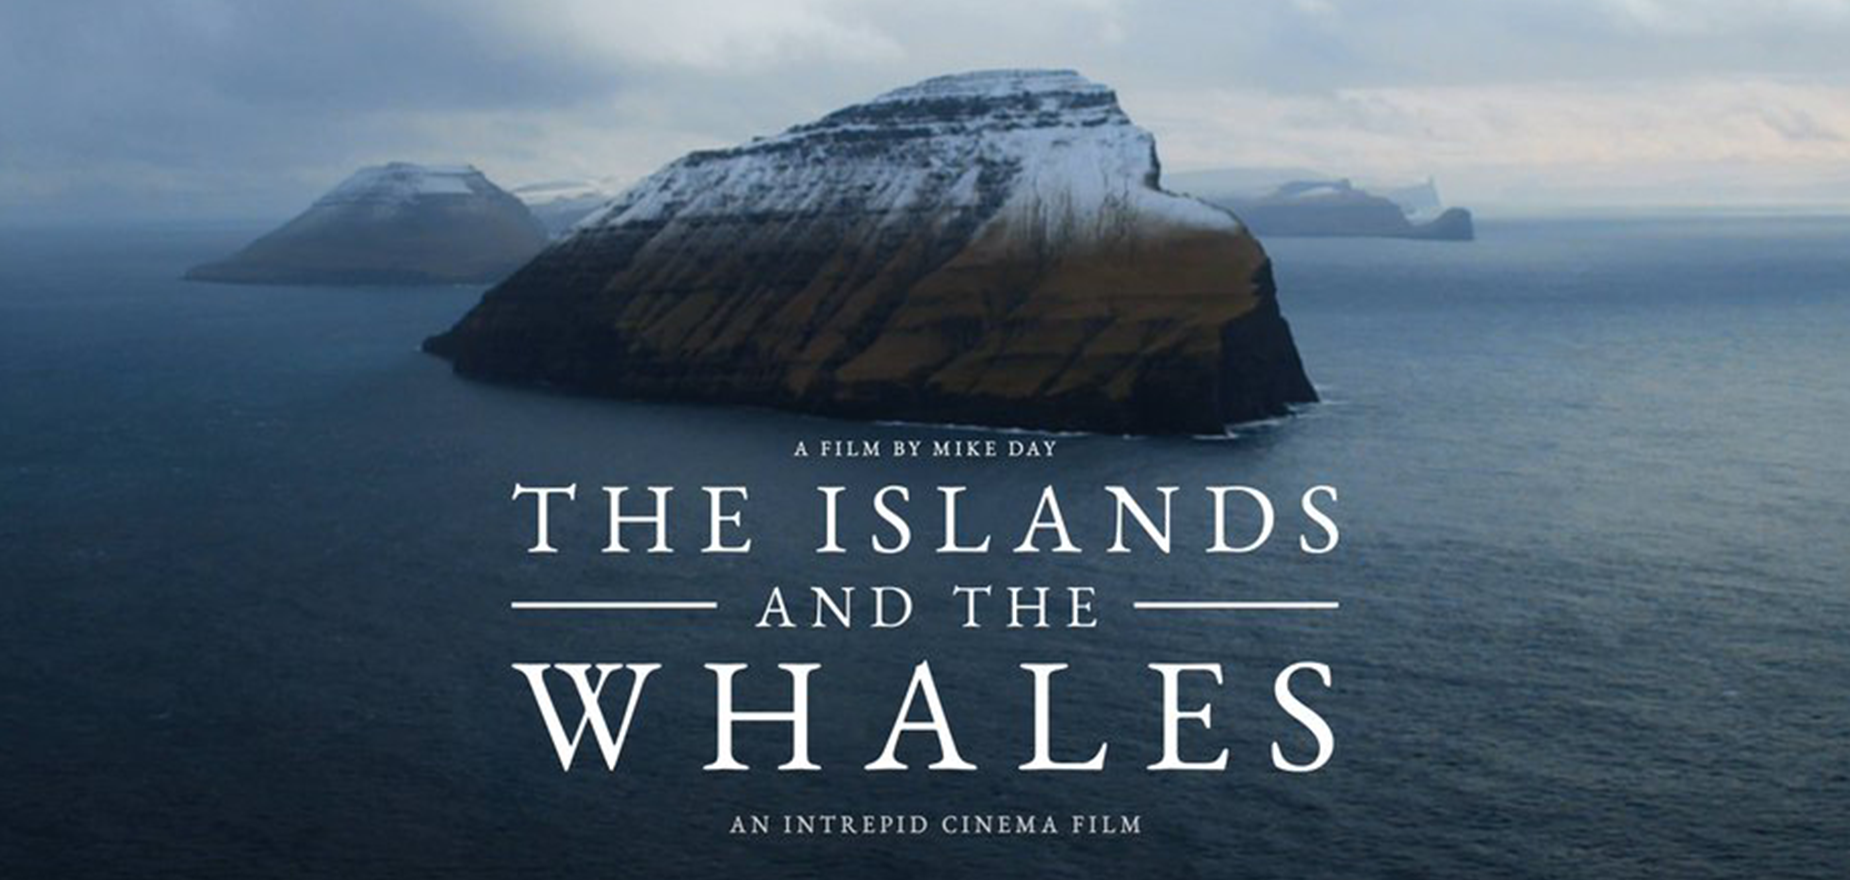 The Islands and the Whales - Intrepid Cinema, Radiator Film